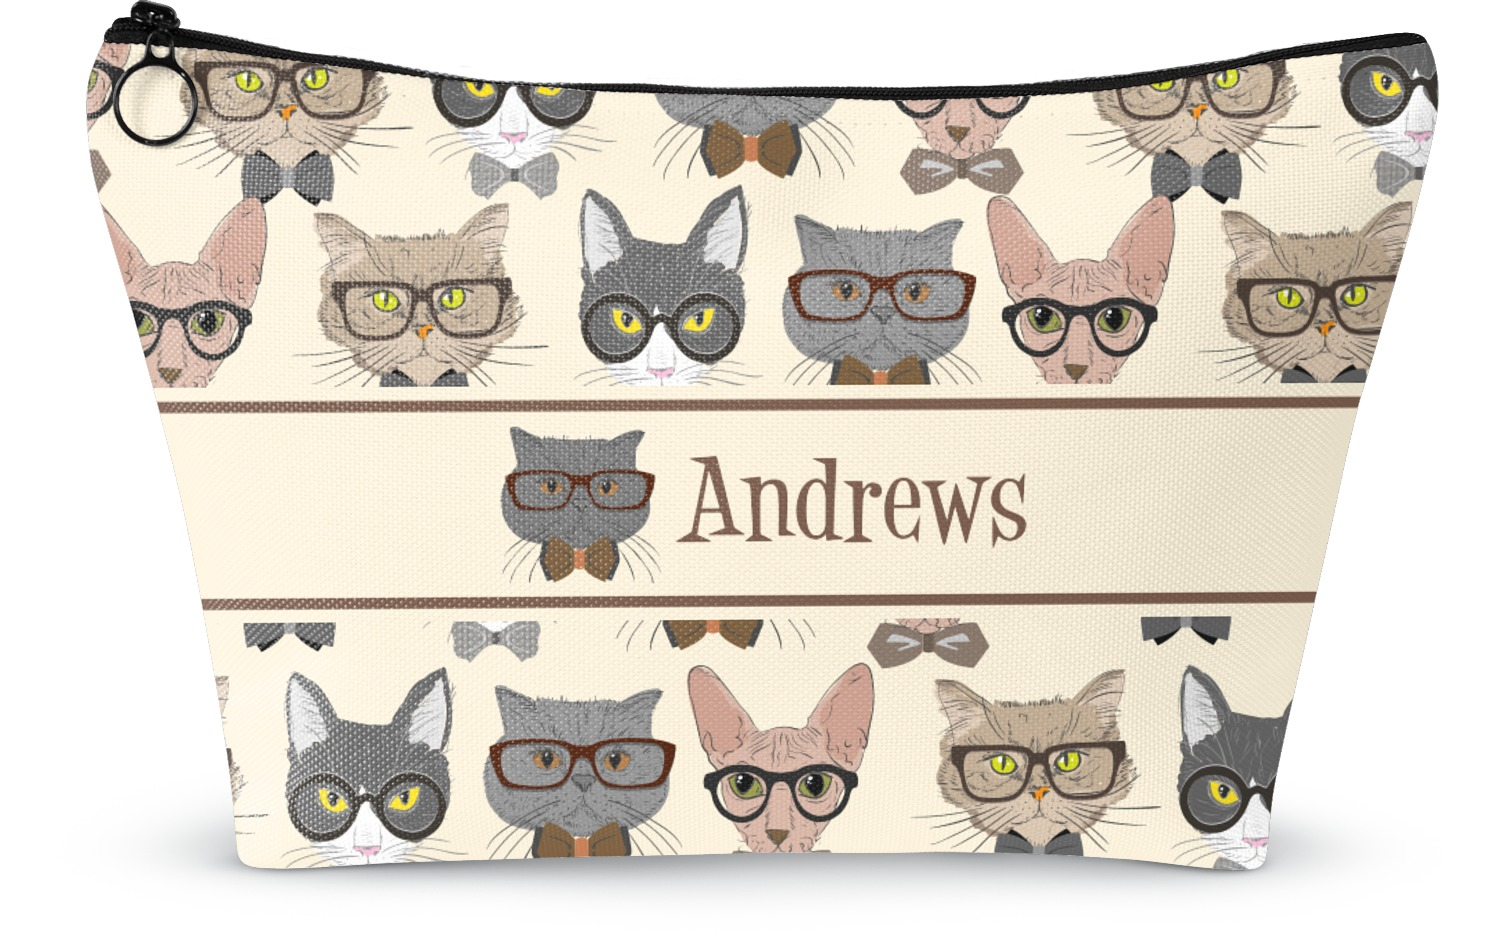 Hipster Cats Makeup Bags Personalized